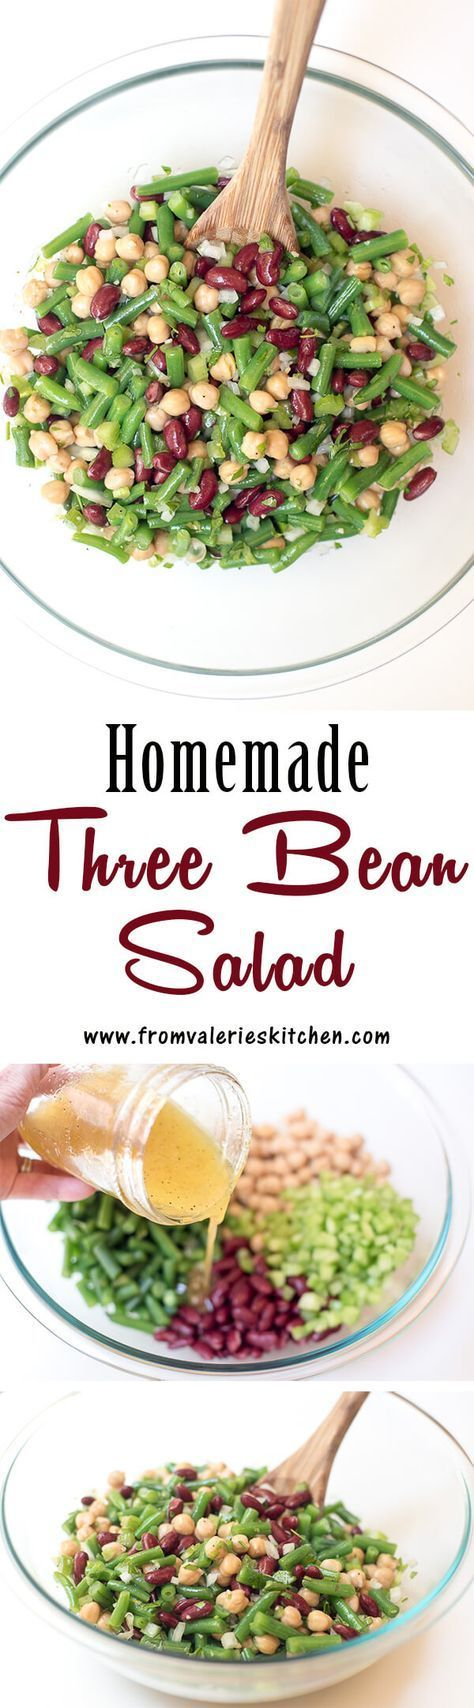 This fresh Homemade Three Bean Salad is so much tastier than the store bought variety. The dressing gives it a sweet, vinegary bite that is irresistibly good. ~ http://www.fromvalerieskitchen.com (Mix Vegetables Meal Prep)